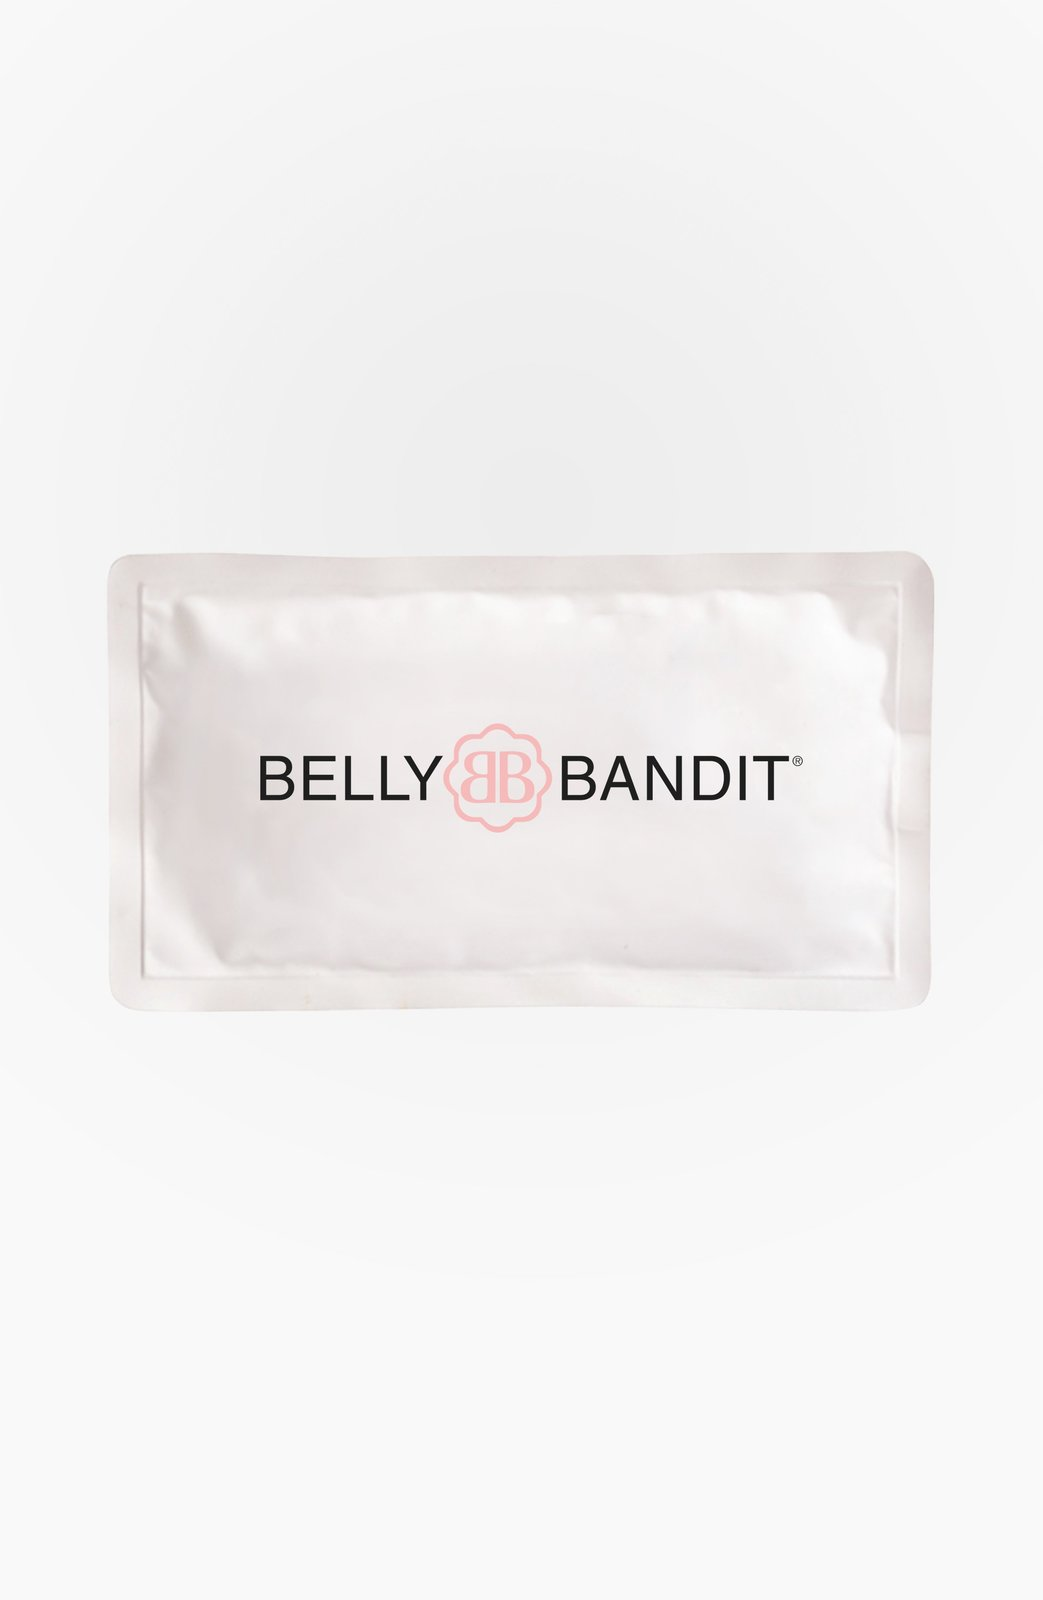 Belly Bandit: Upsie Belly - Black (Small) image